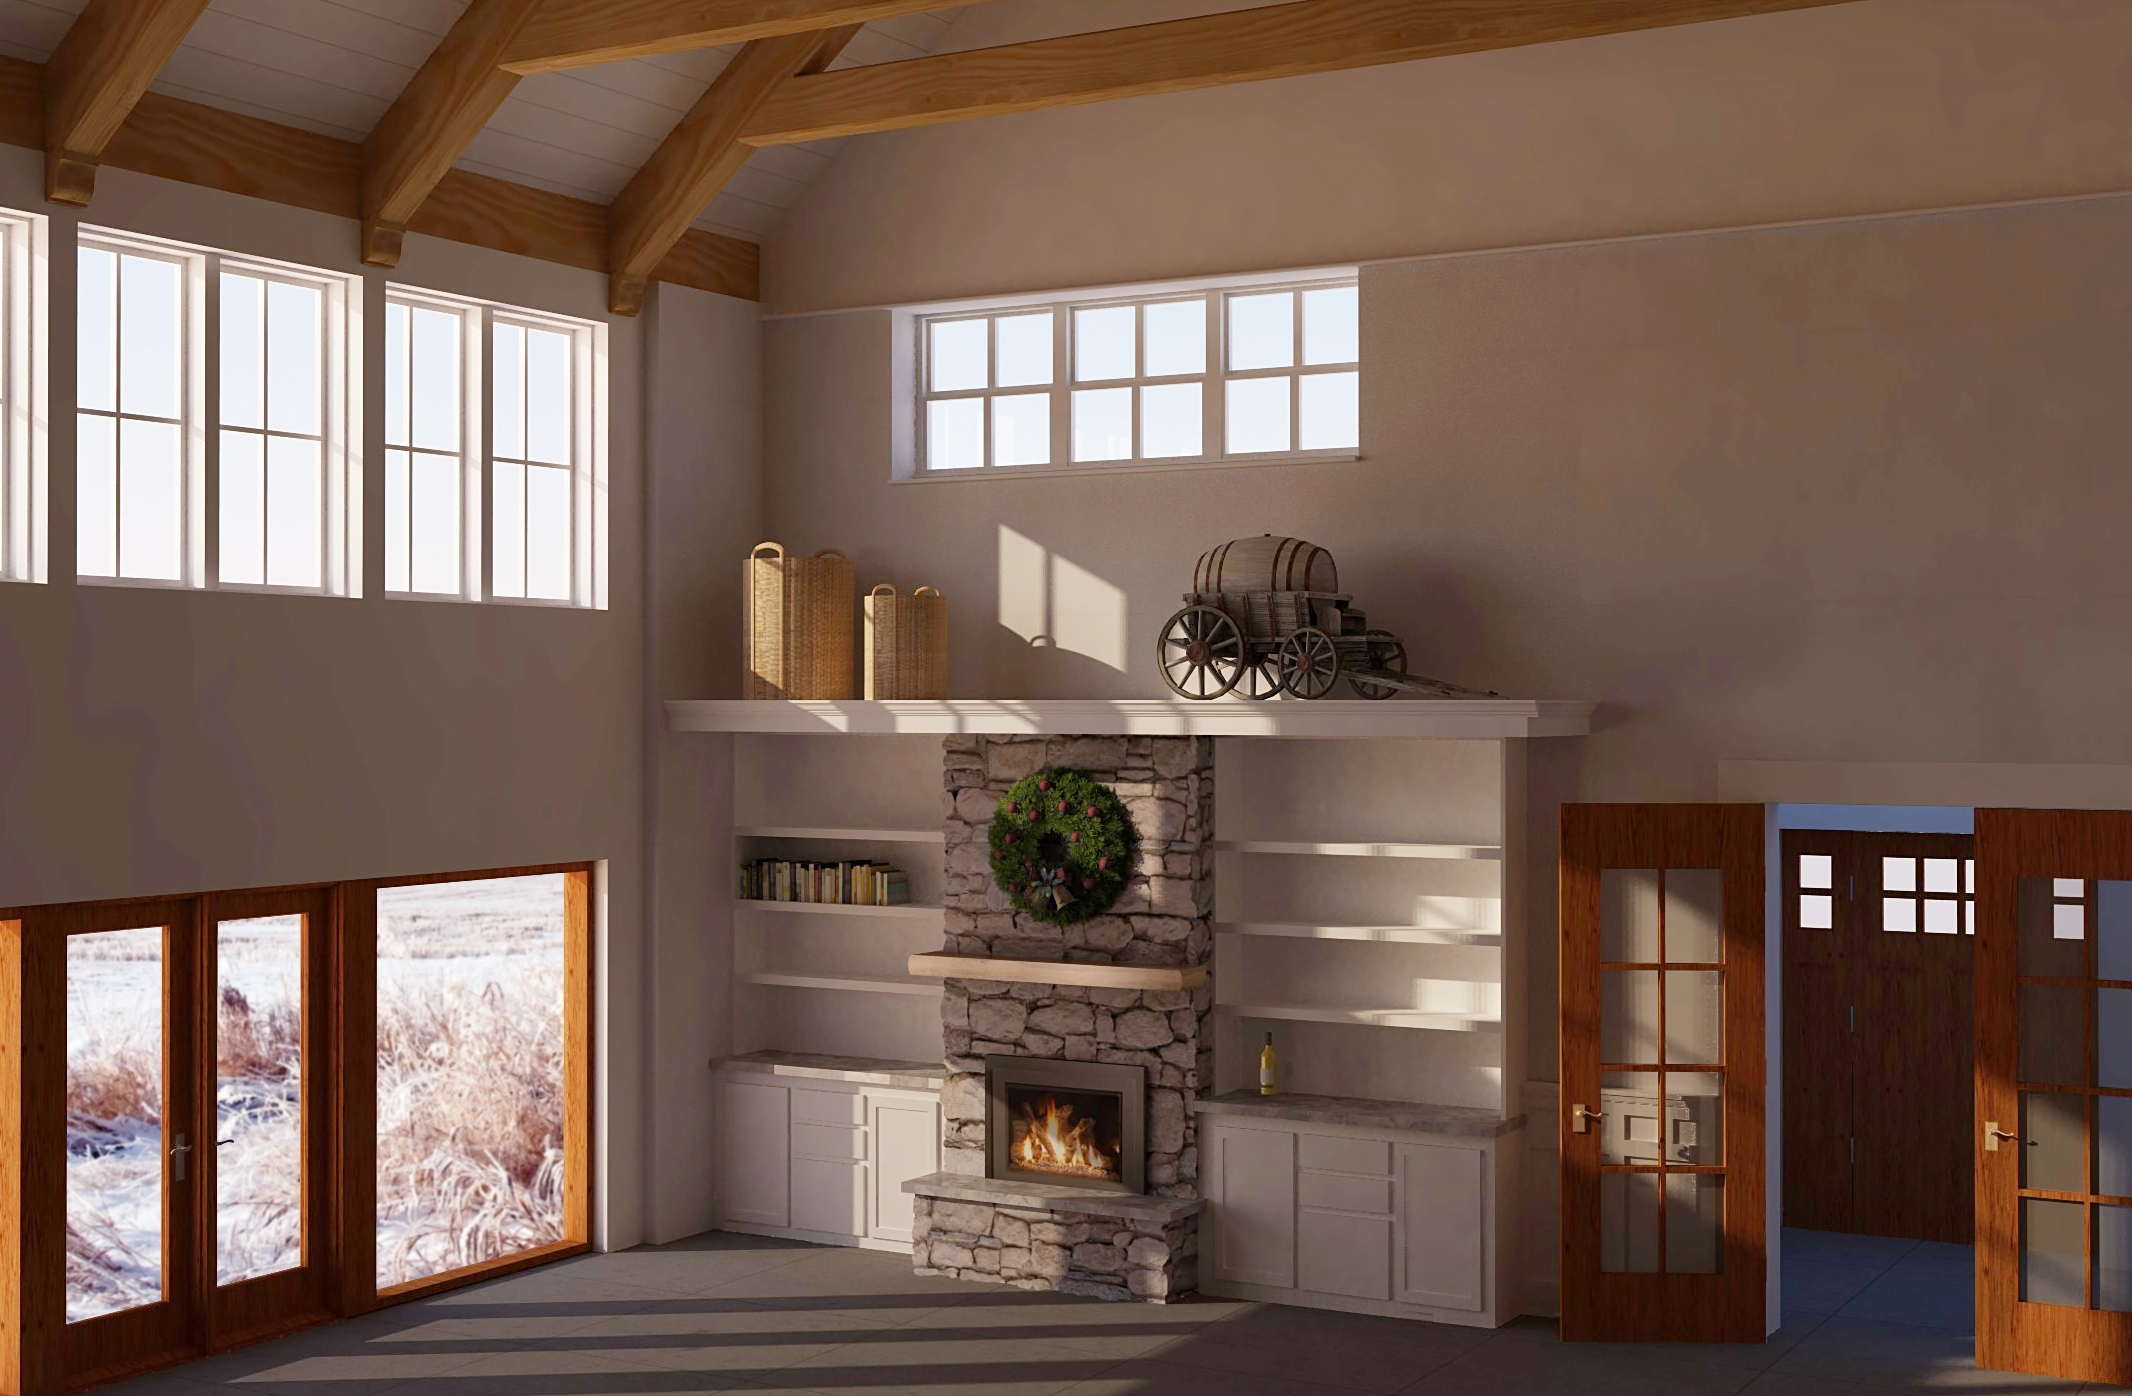 Southwest corner of the family room on a virtual winter morning.